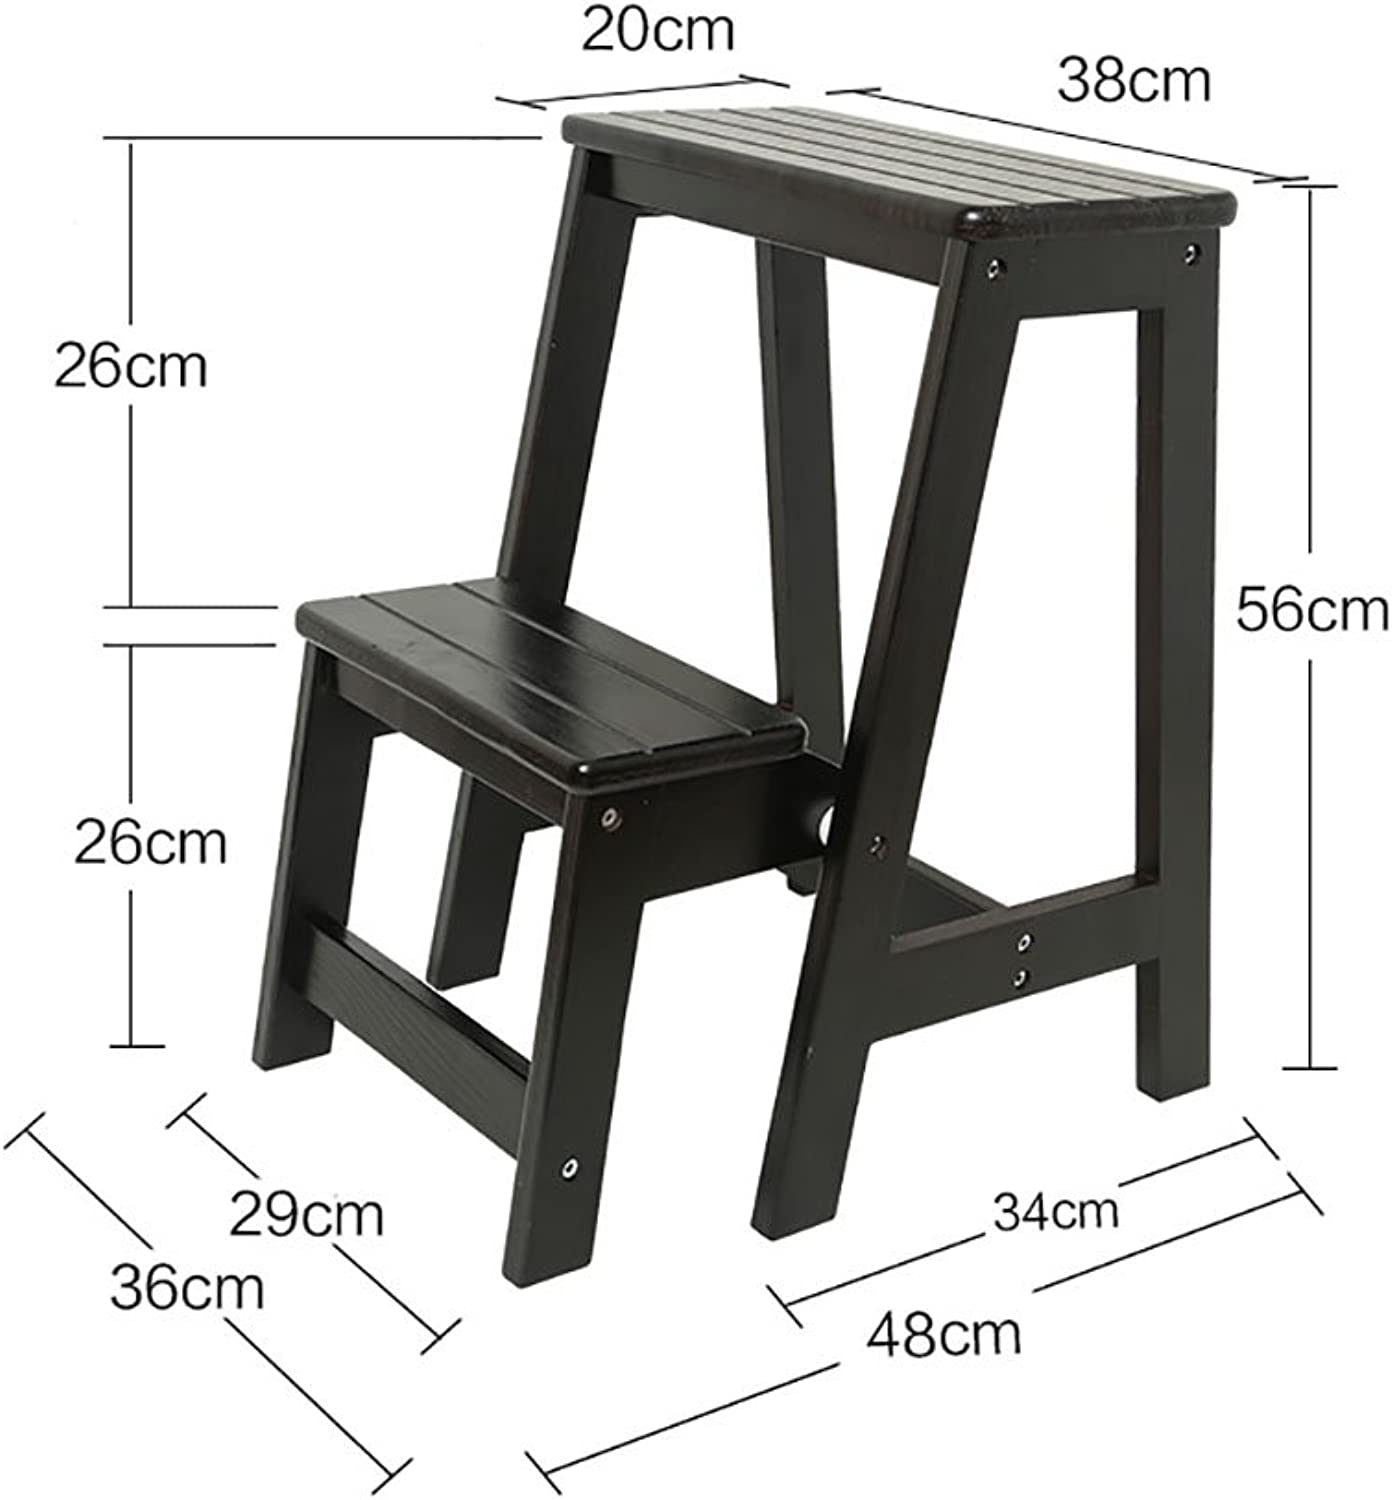 Step Stool Solid Wood Flower Stand Shelf Household Ladder Folding Ladder Wooden Ladder Ladder Multifunction Indoor Household Ascend The Small Ladder 1Pic